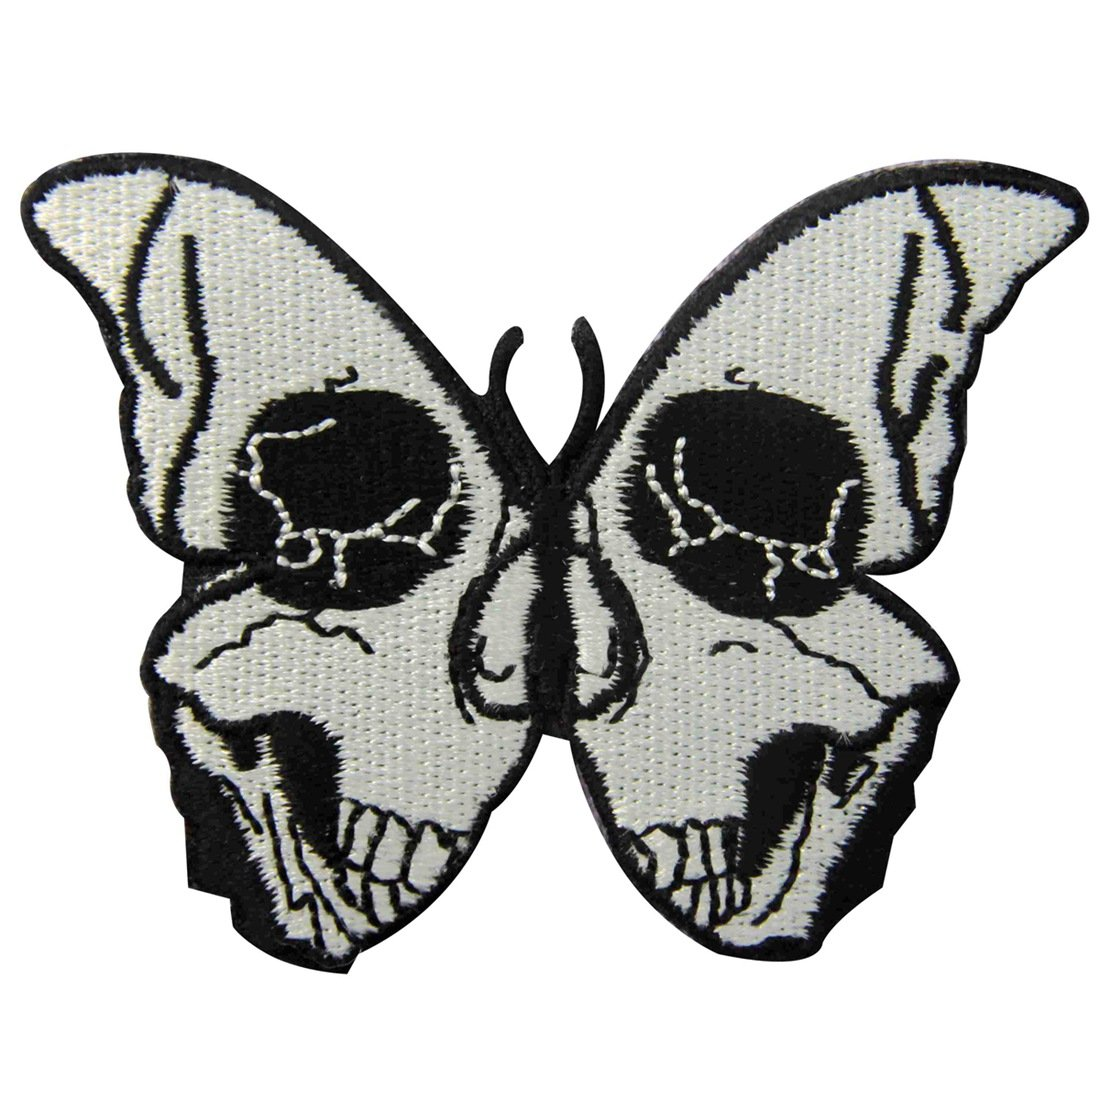 ed6a547878e Get Quotations · ZEGINs The Skull Butterfly Embroidered Badge Iron On Sew  On Patch